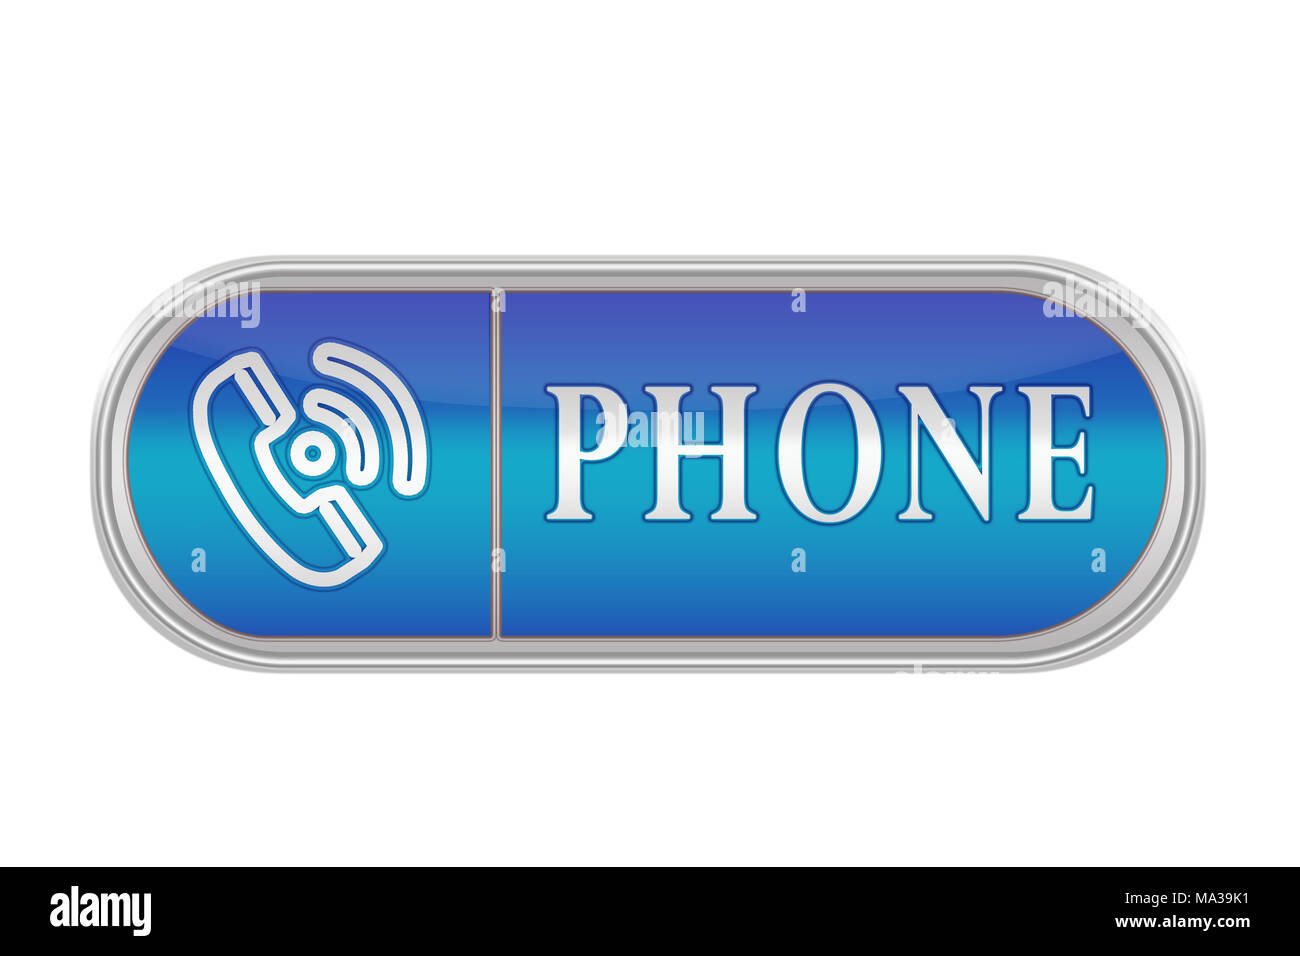 Oblong volume button of blue color with the icon and the inscription 'PHONE', white background - Stock Image